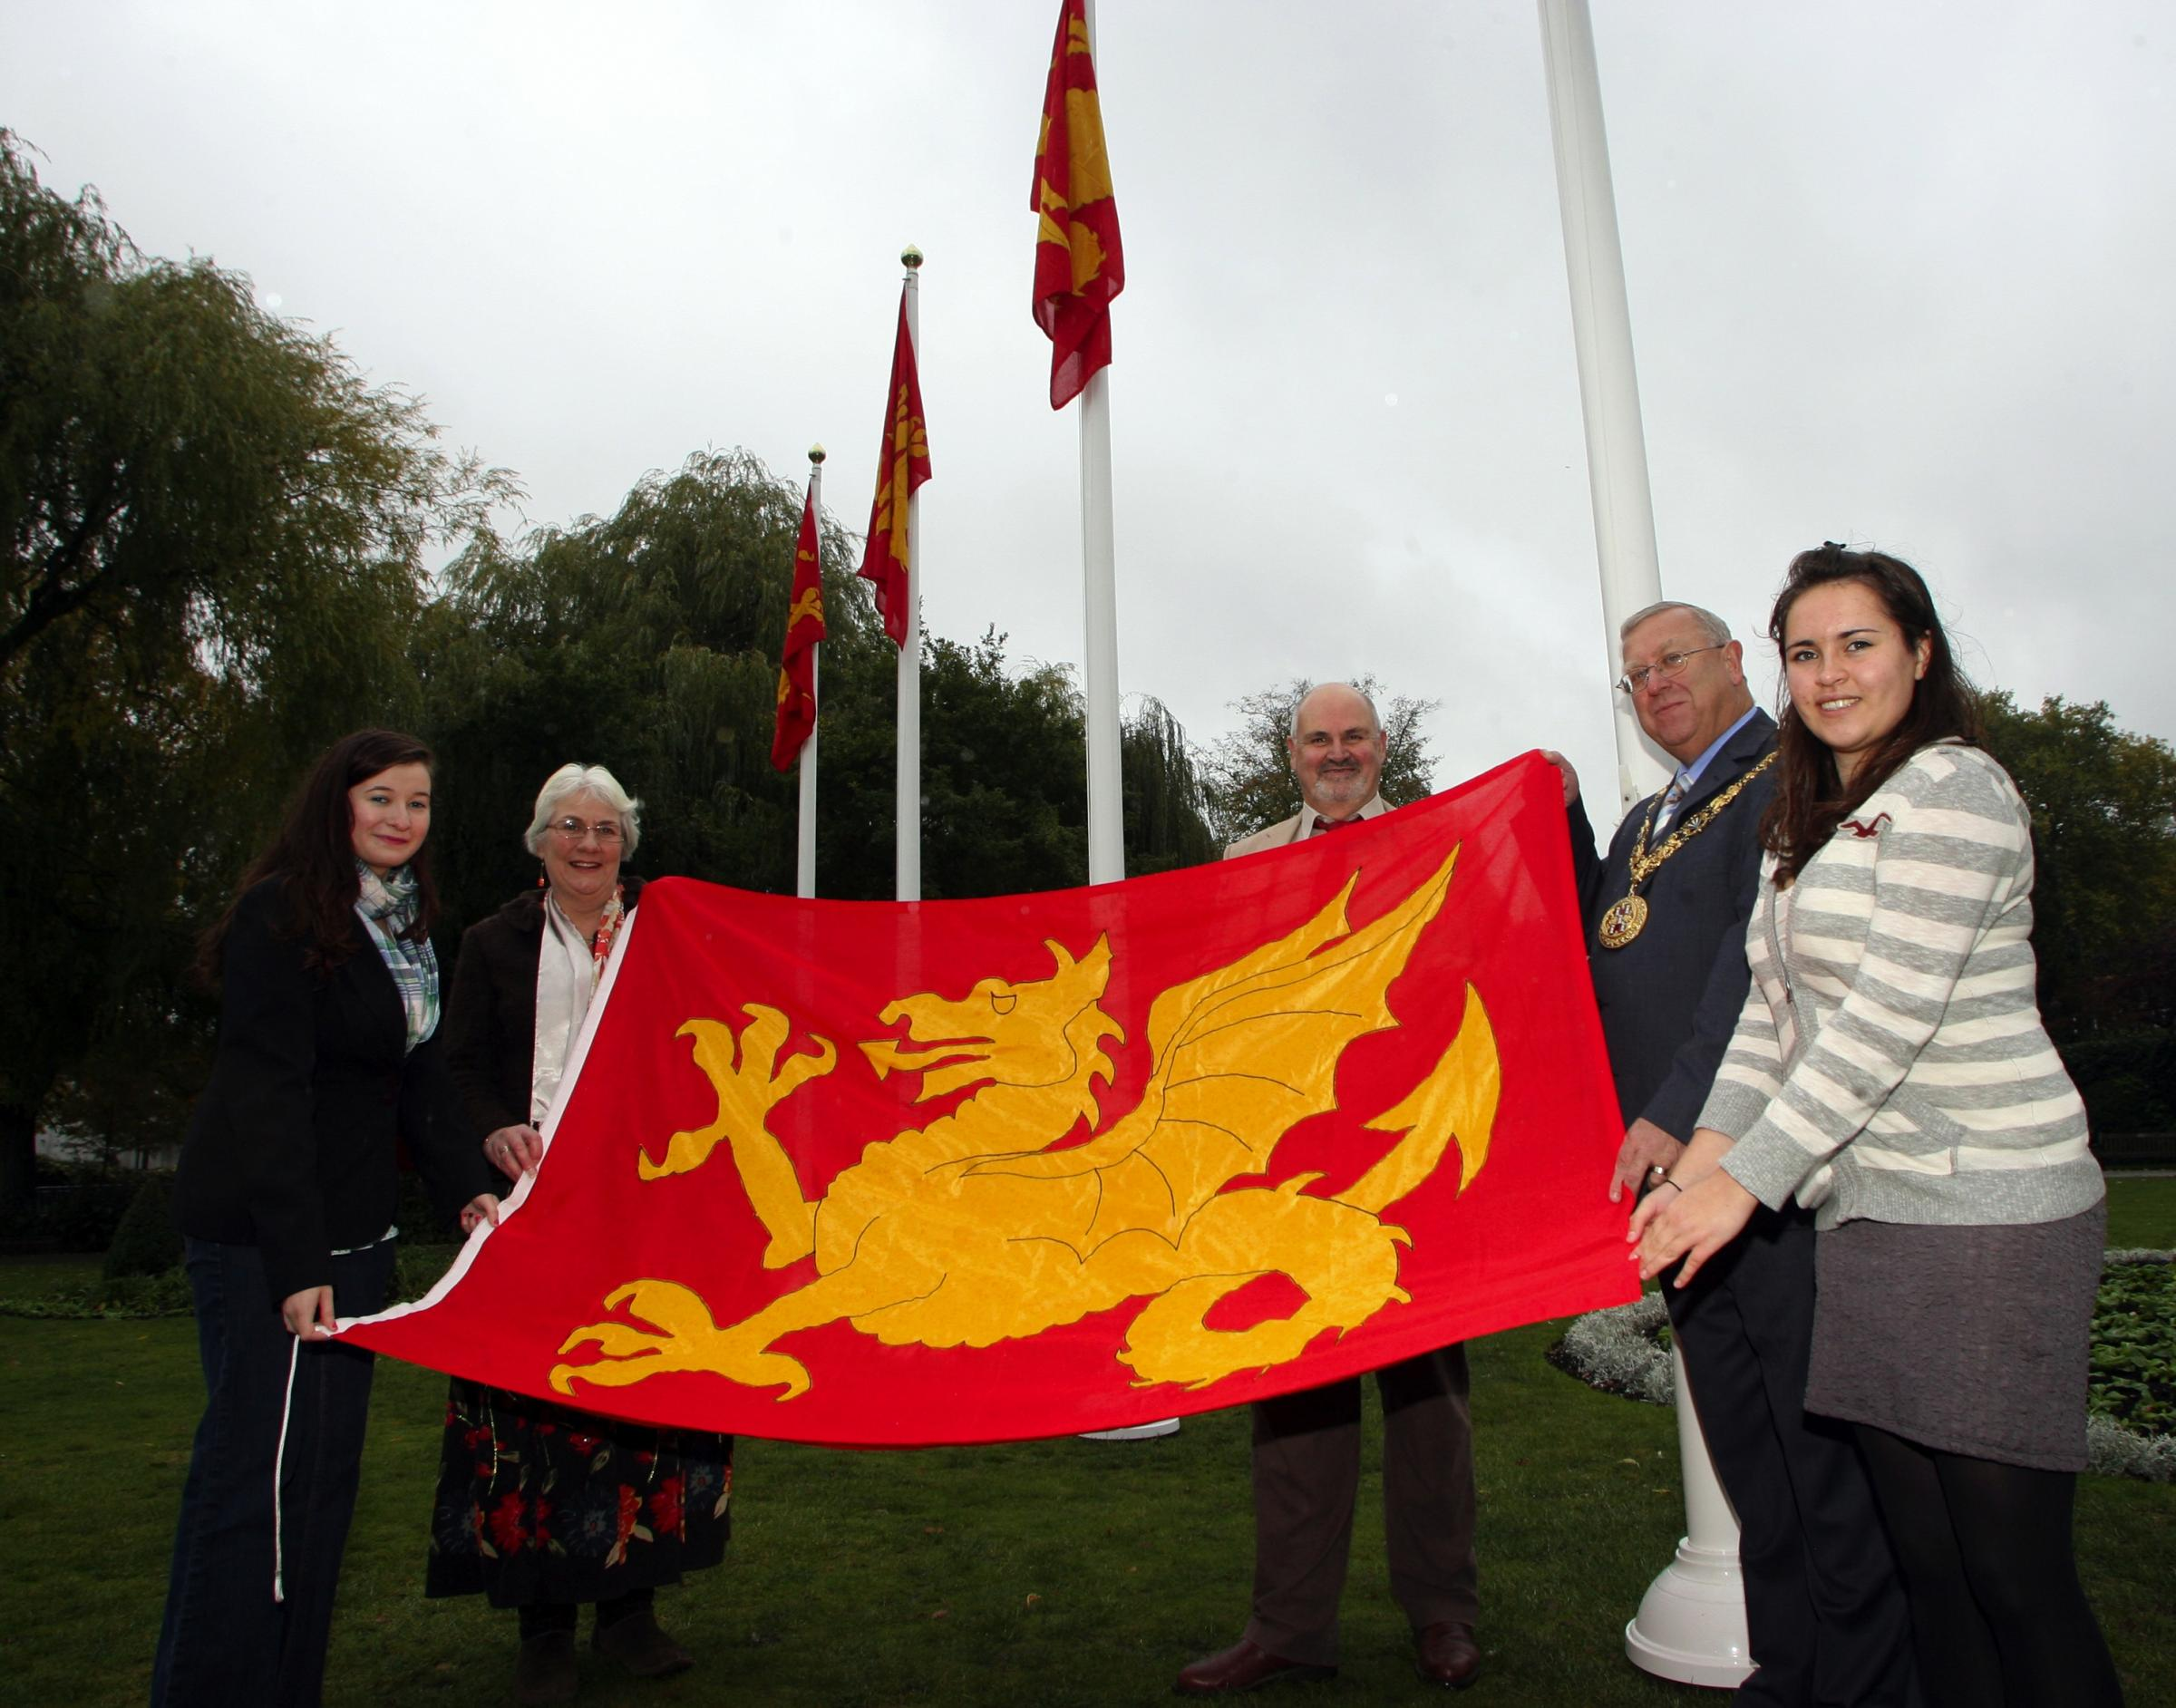 From left – Suzy Wesley, Mayoress Elaine Izard, Derek Pickett, chairman of the Wessex Society, the Mayor Cllr Richard Izard and Lydia Morrell with the flag of Wessex in Abbey Gardens, Winchester, in 2010.